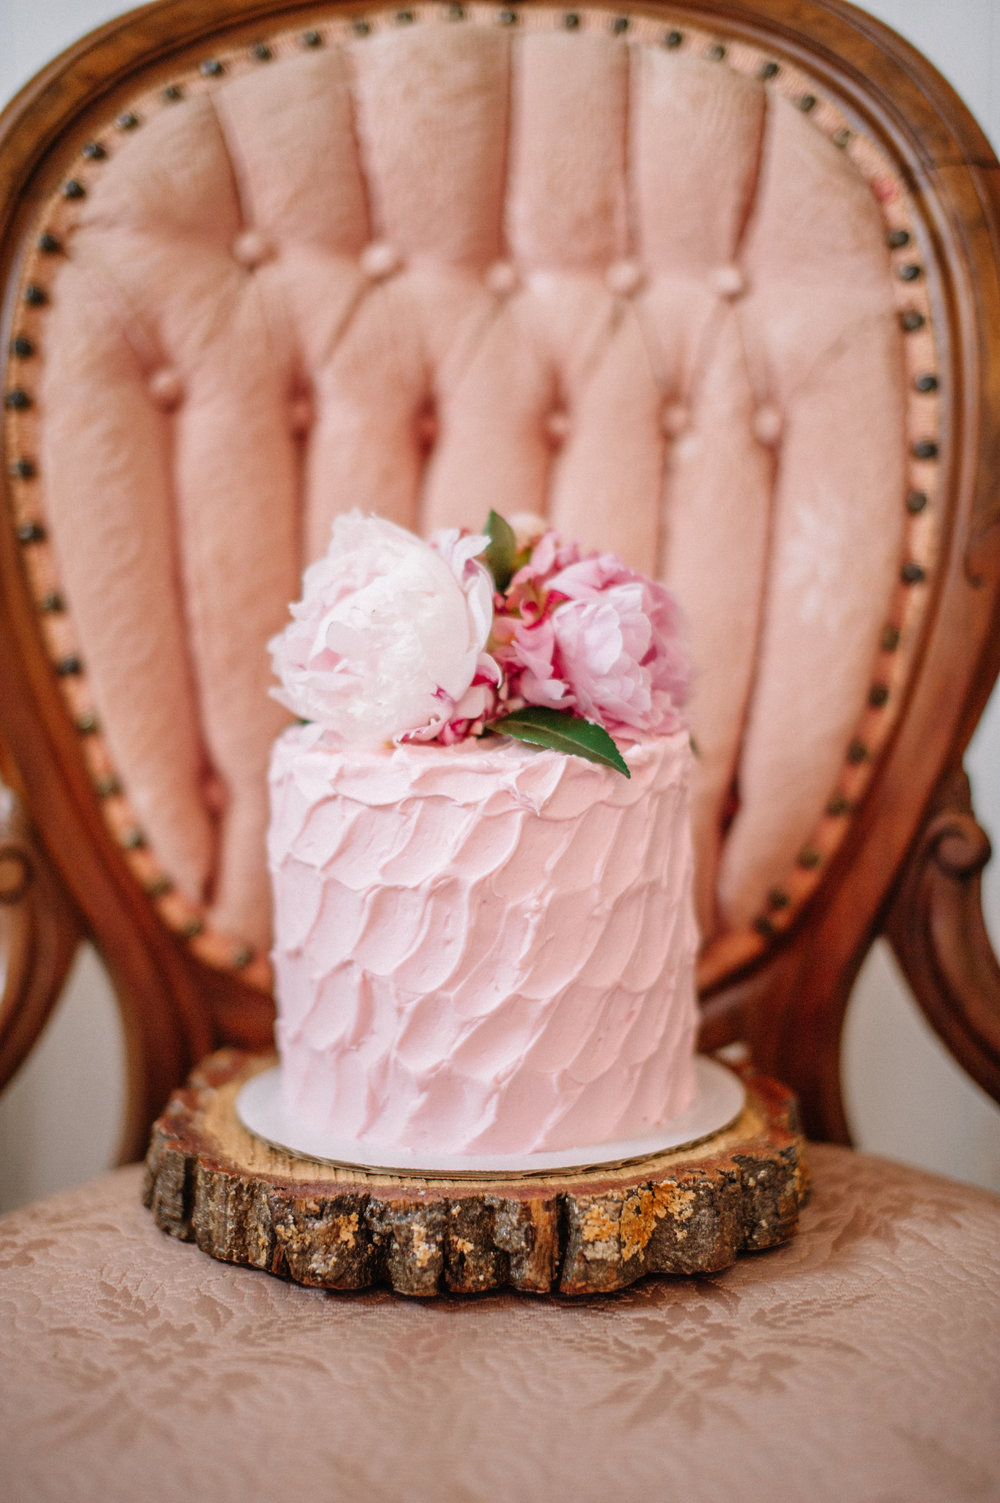 Sorby Sweets Wedding Cake